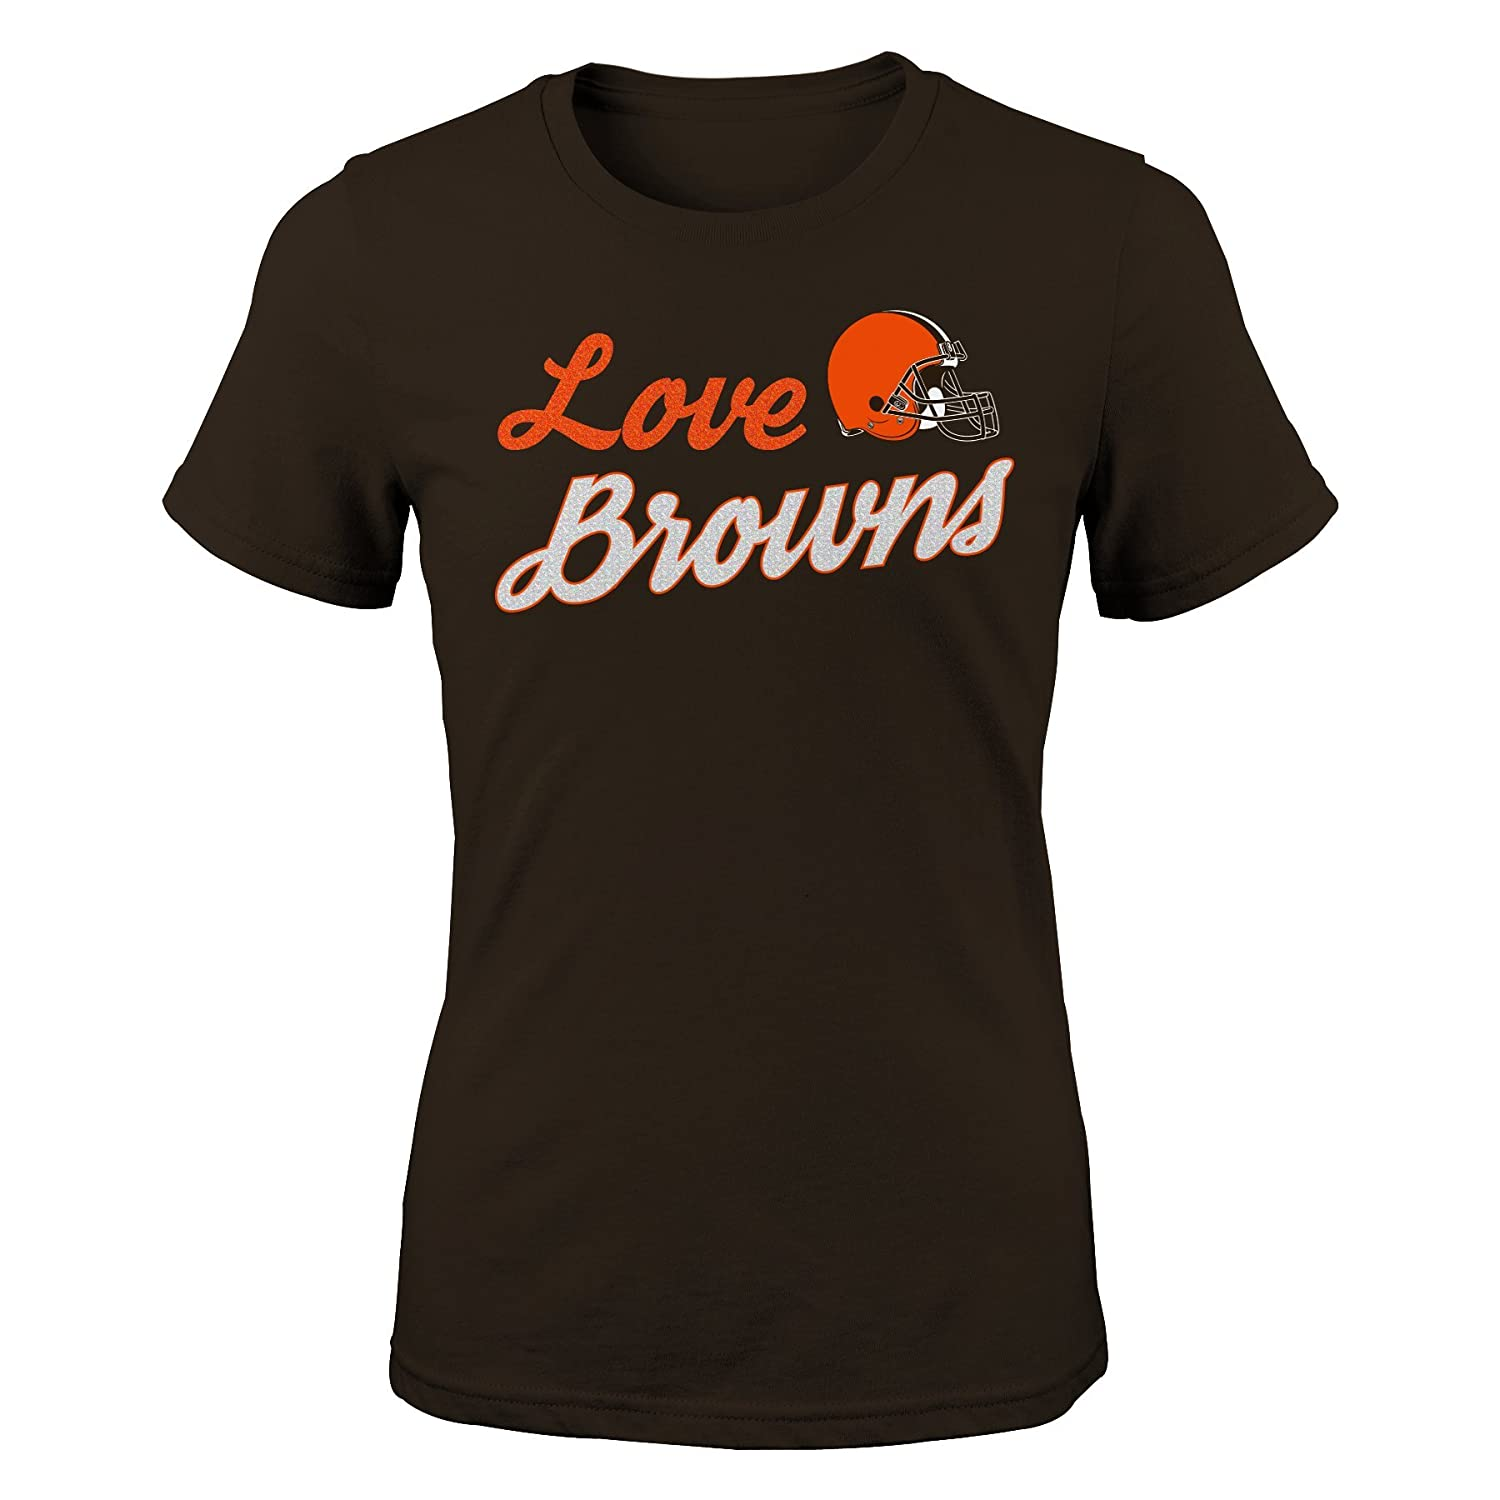 Outerstuff NFL Youth Girls 7-16 Live Love Team Short Sleeve Tee